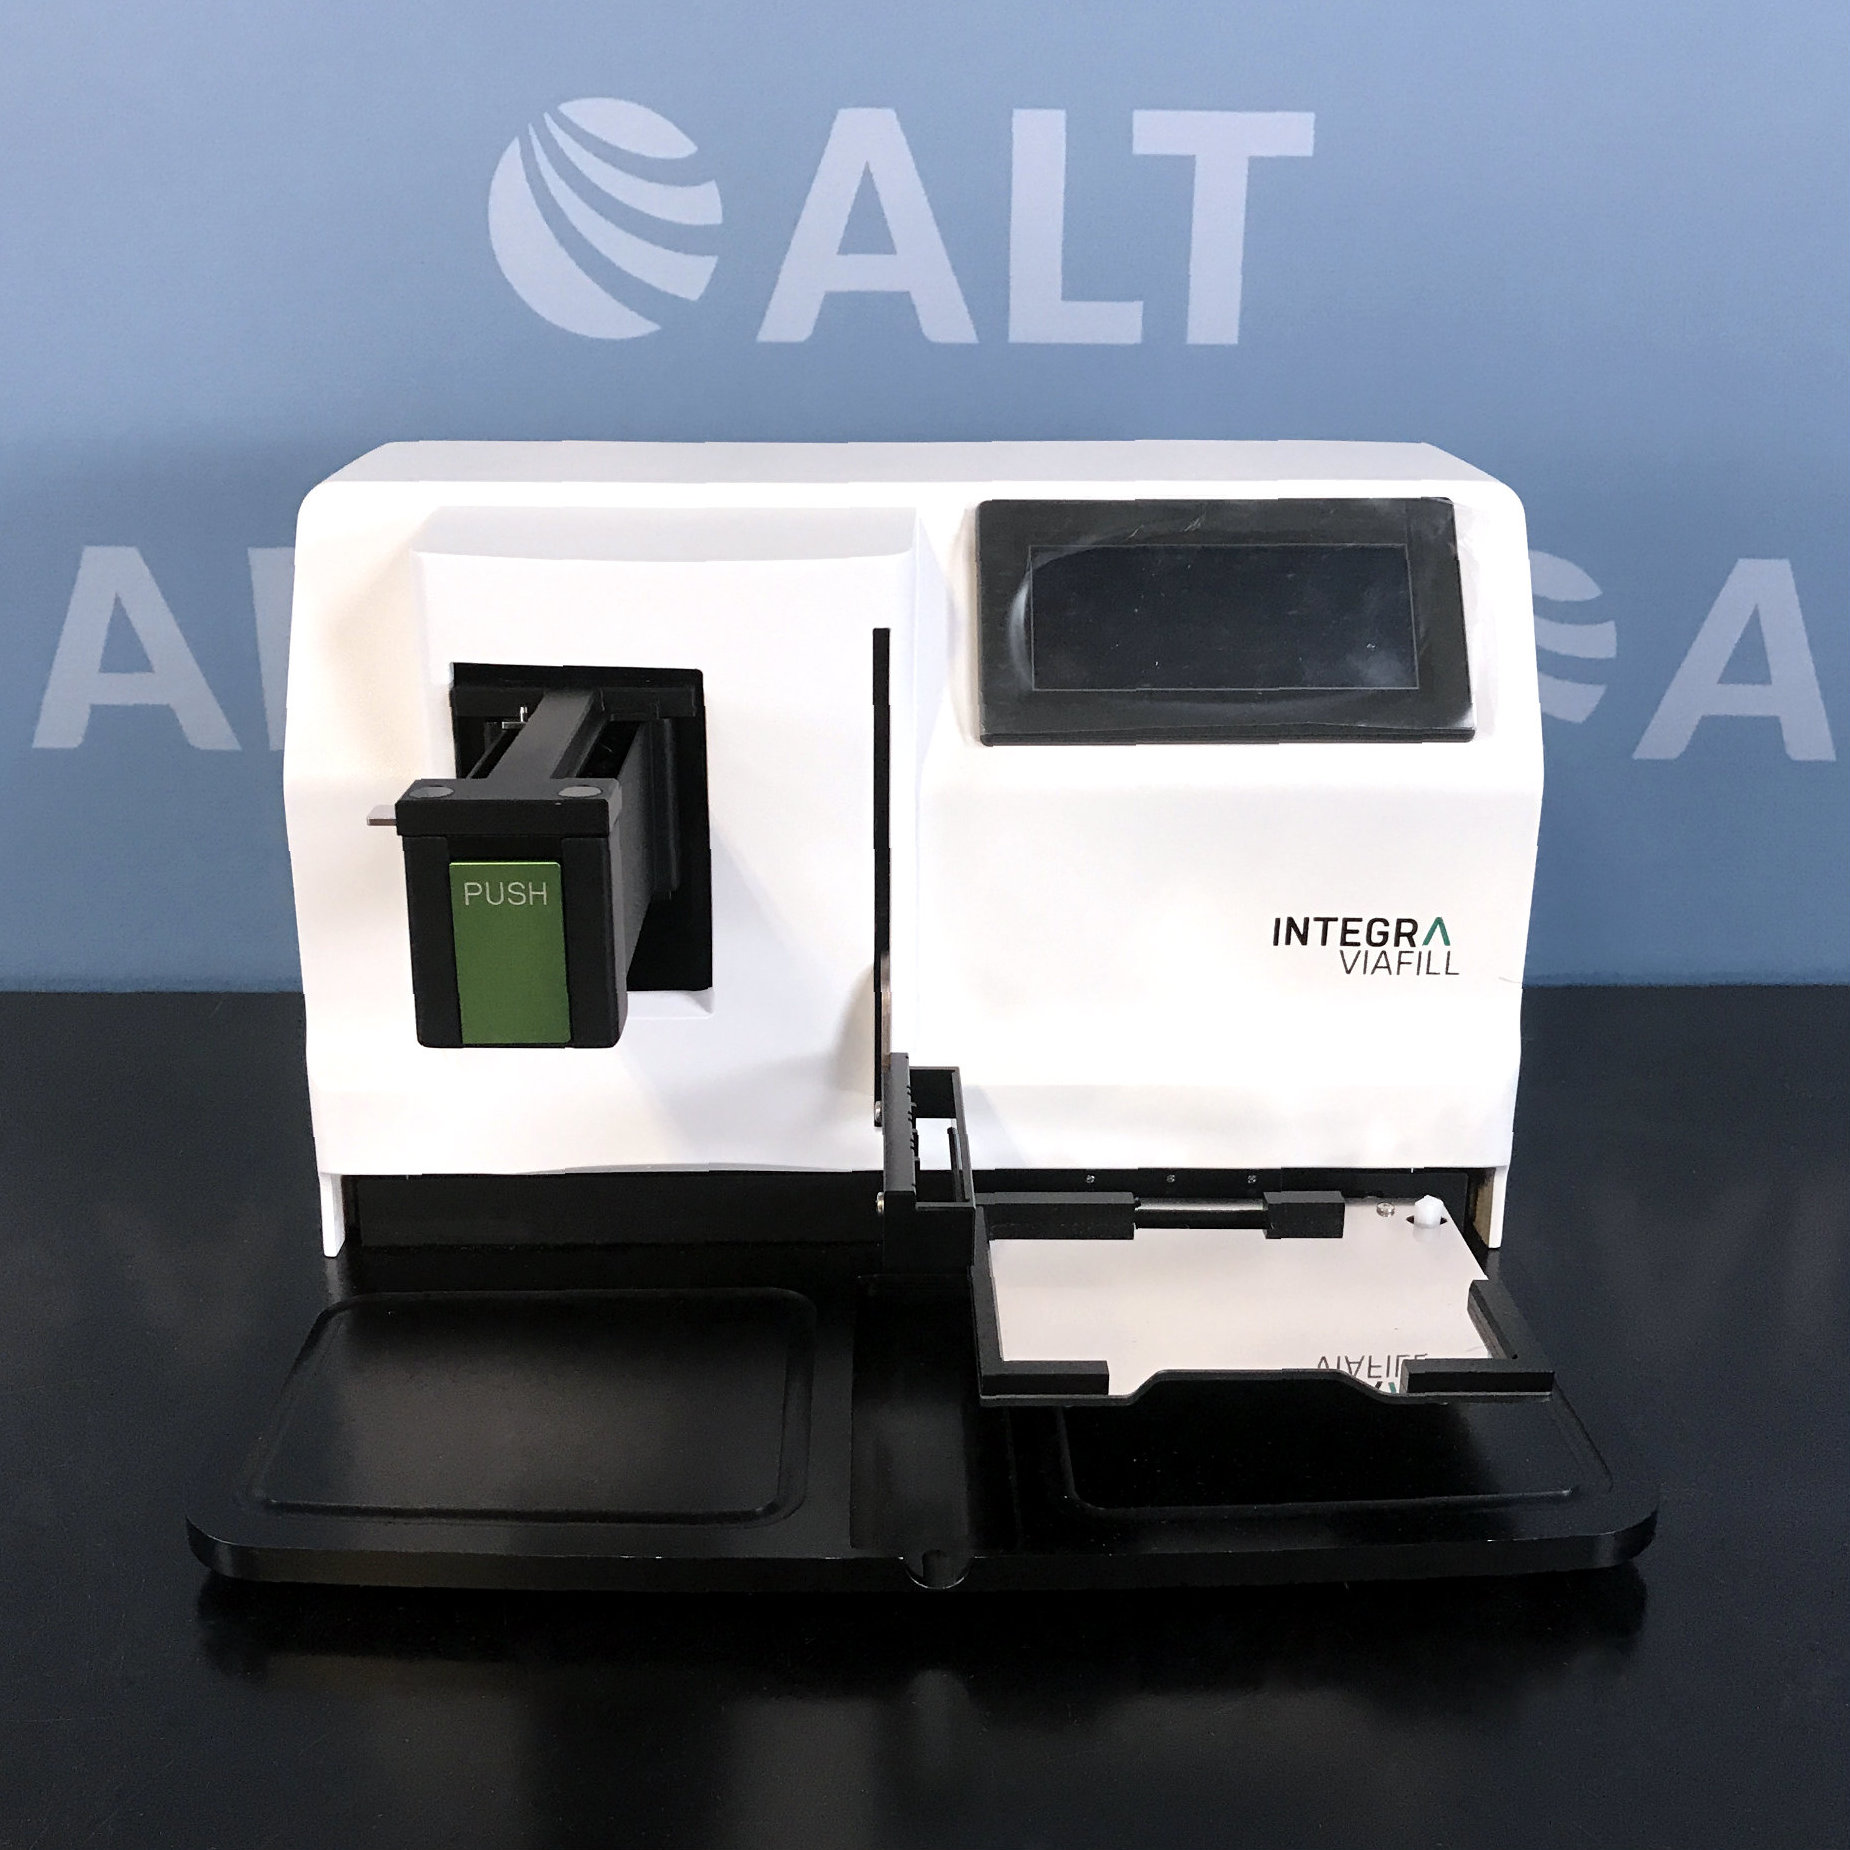 INTEGRA Biosciences Viafill Rapid Reagent Dispenser Image